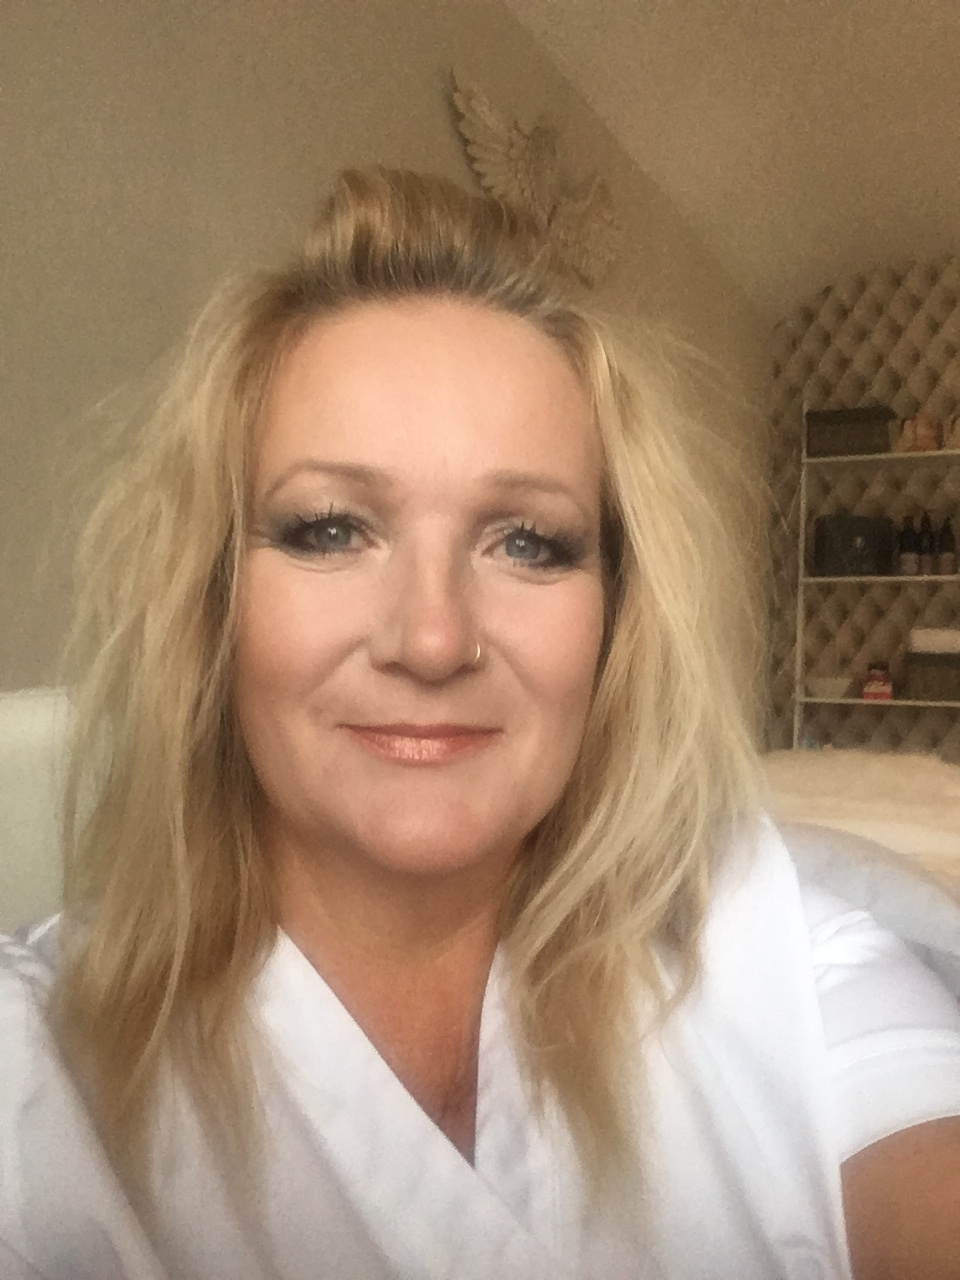 Denise Kirby ,    founder and therapist.   Swedish Massage Dip. SNHS Dips. (CBT, Psychotherapy, Counselling, Life Coaching, Nutrition, Reflexology, Aromatherapy, Hot Stones, Indian Head Massage, Relaxation & Meditation)  Child Safeguarding trained & DBS checked.